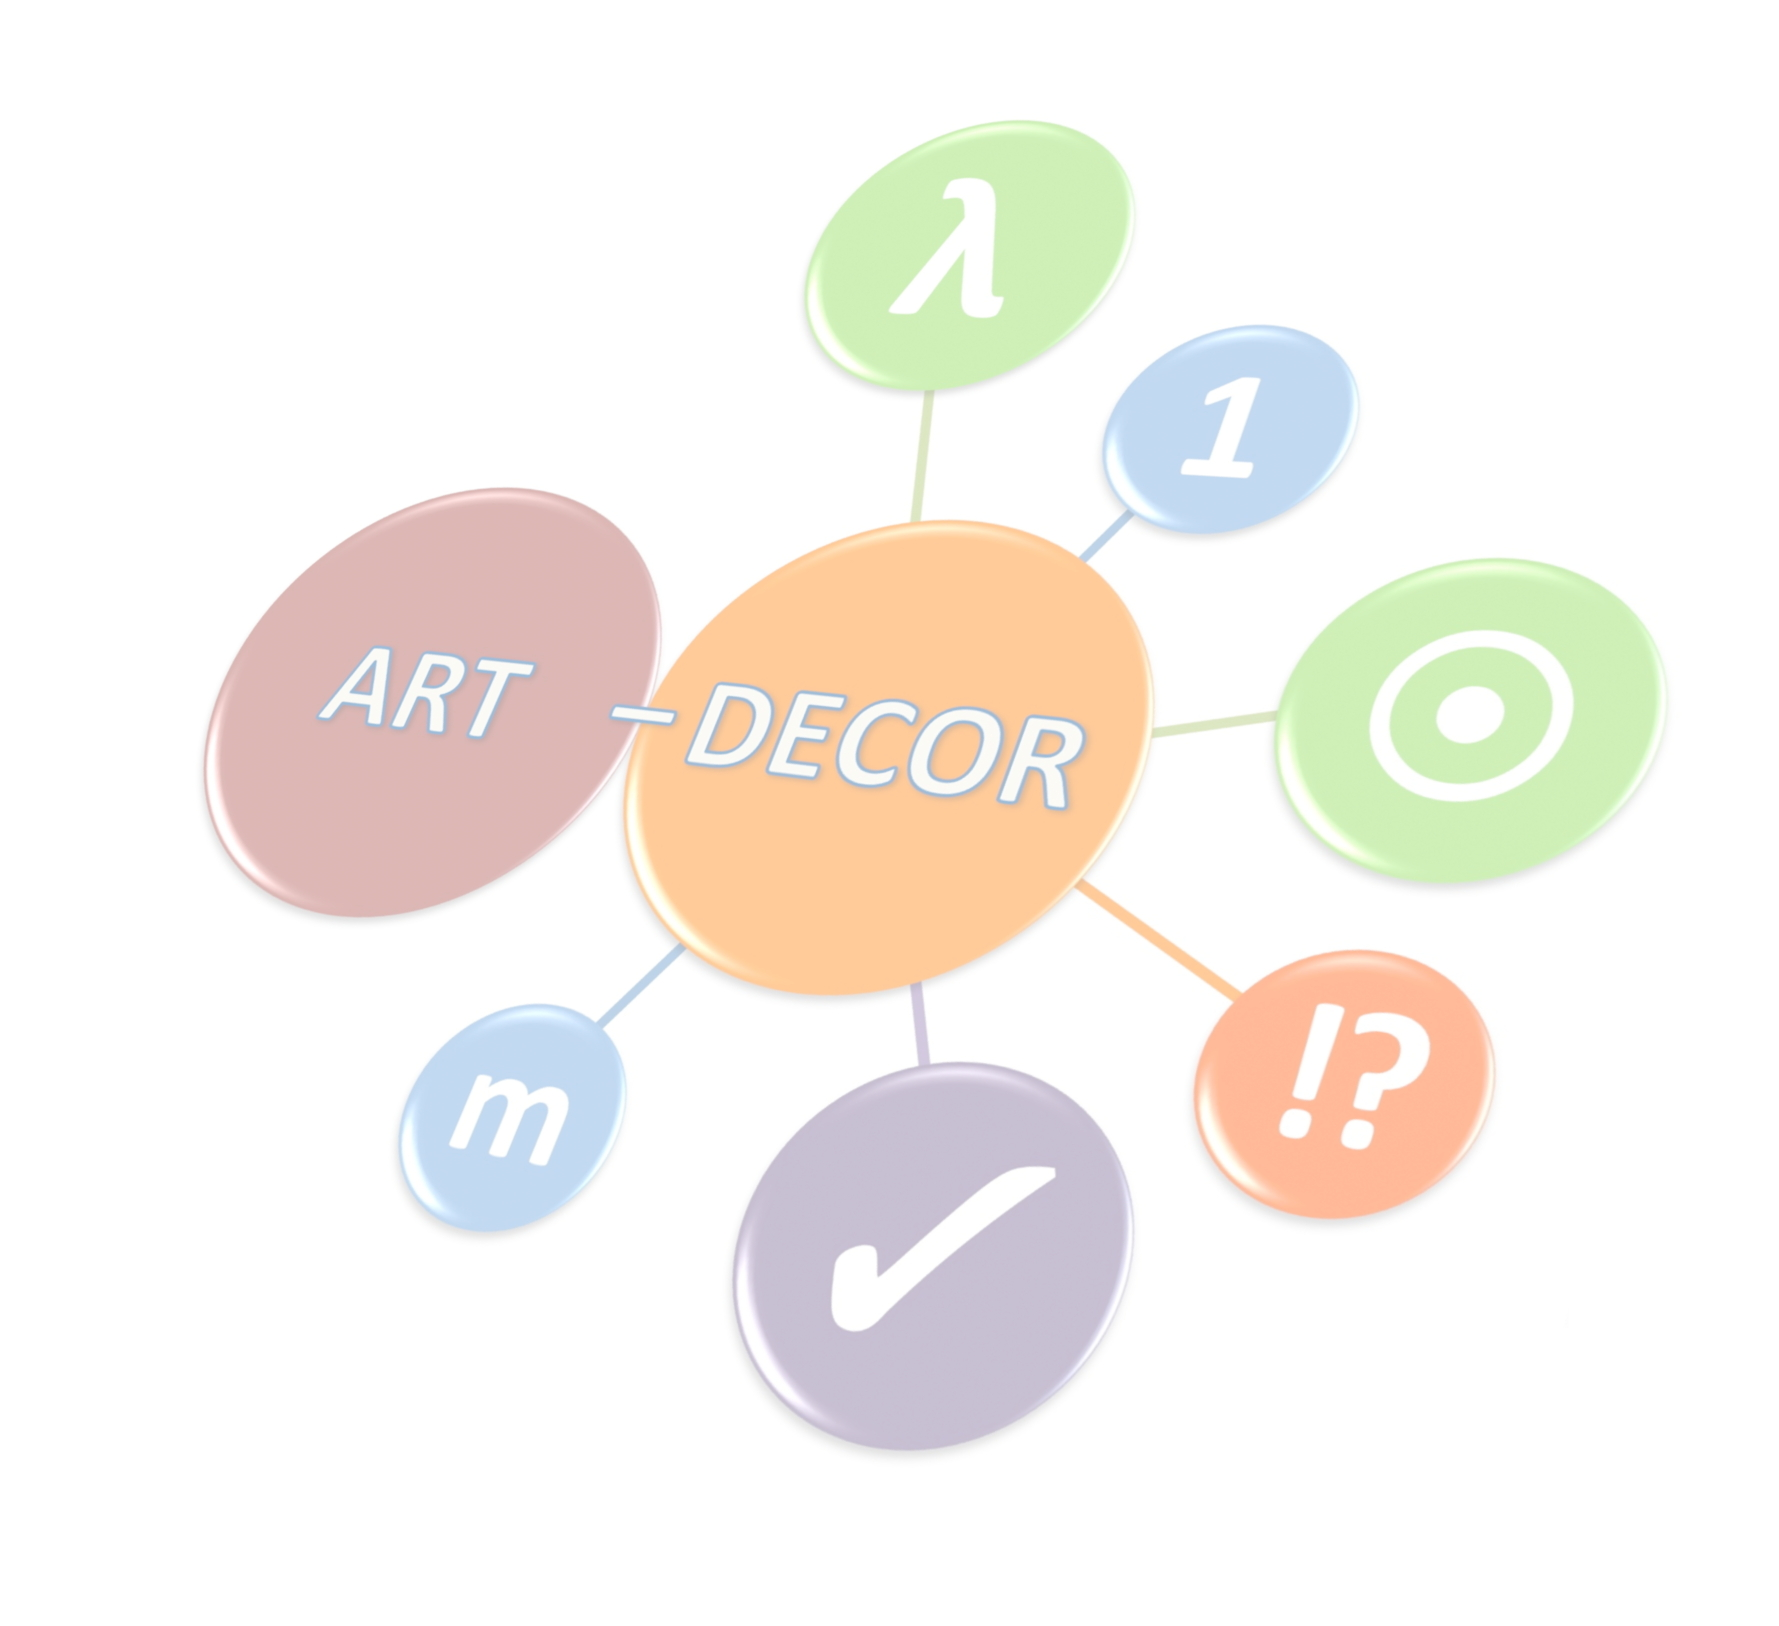 ART-DECOR logo